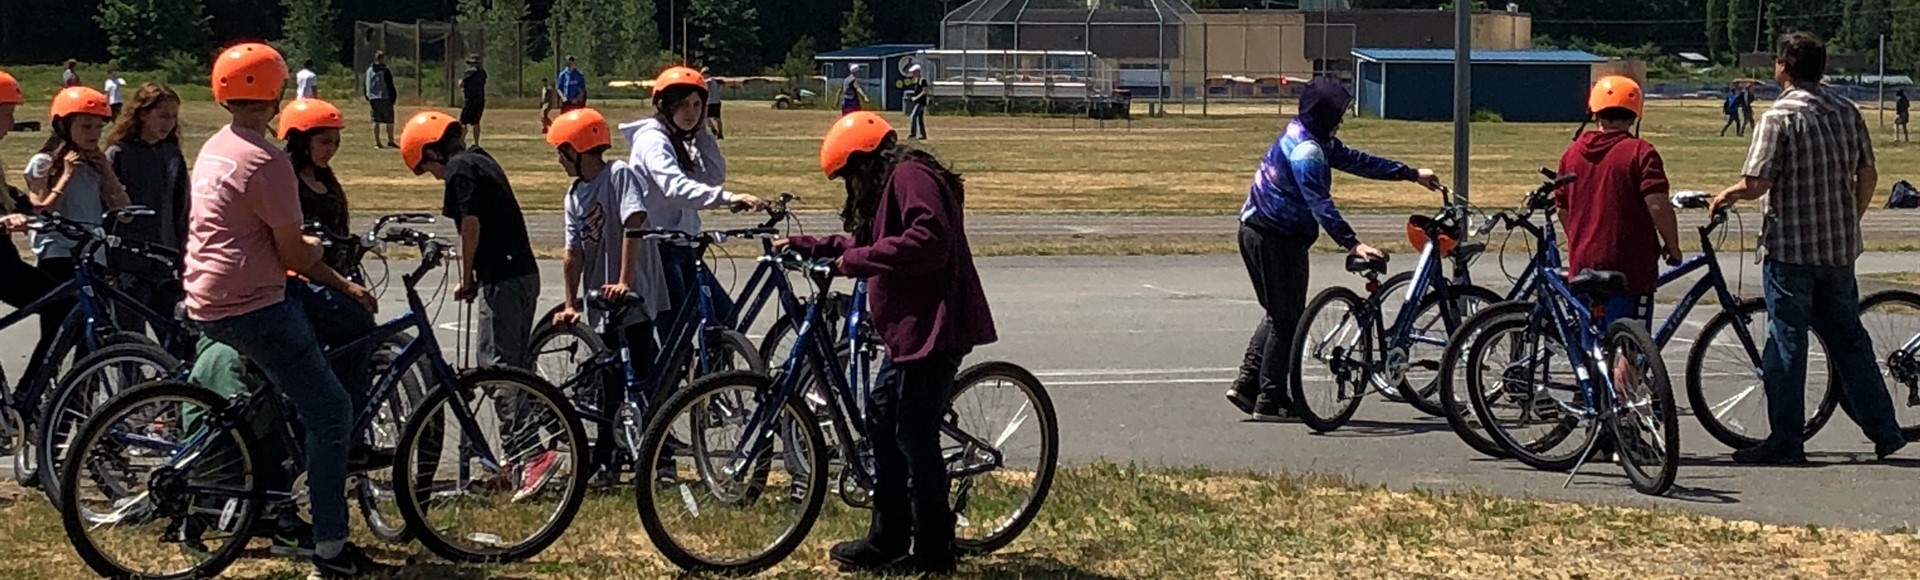 Shawn Meacham's PE Class on Bikes